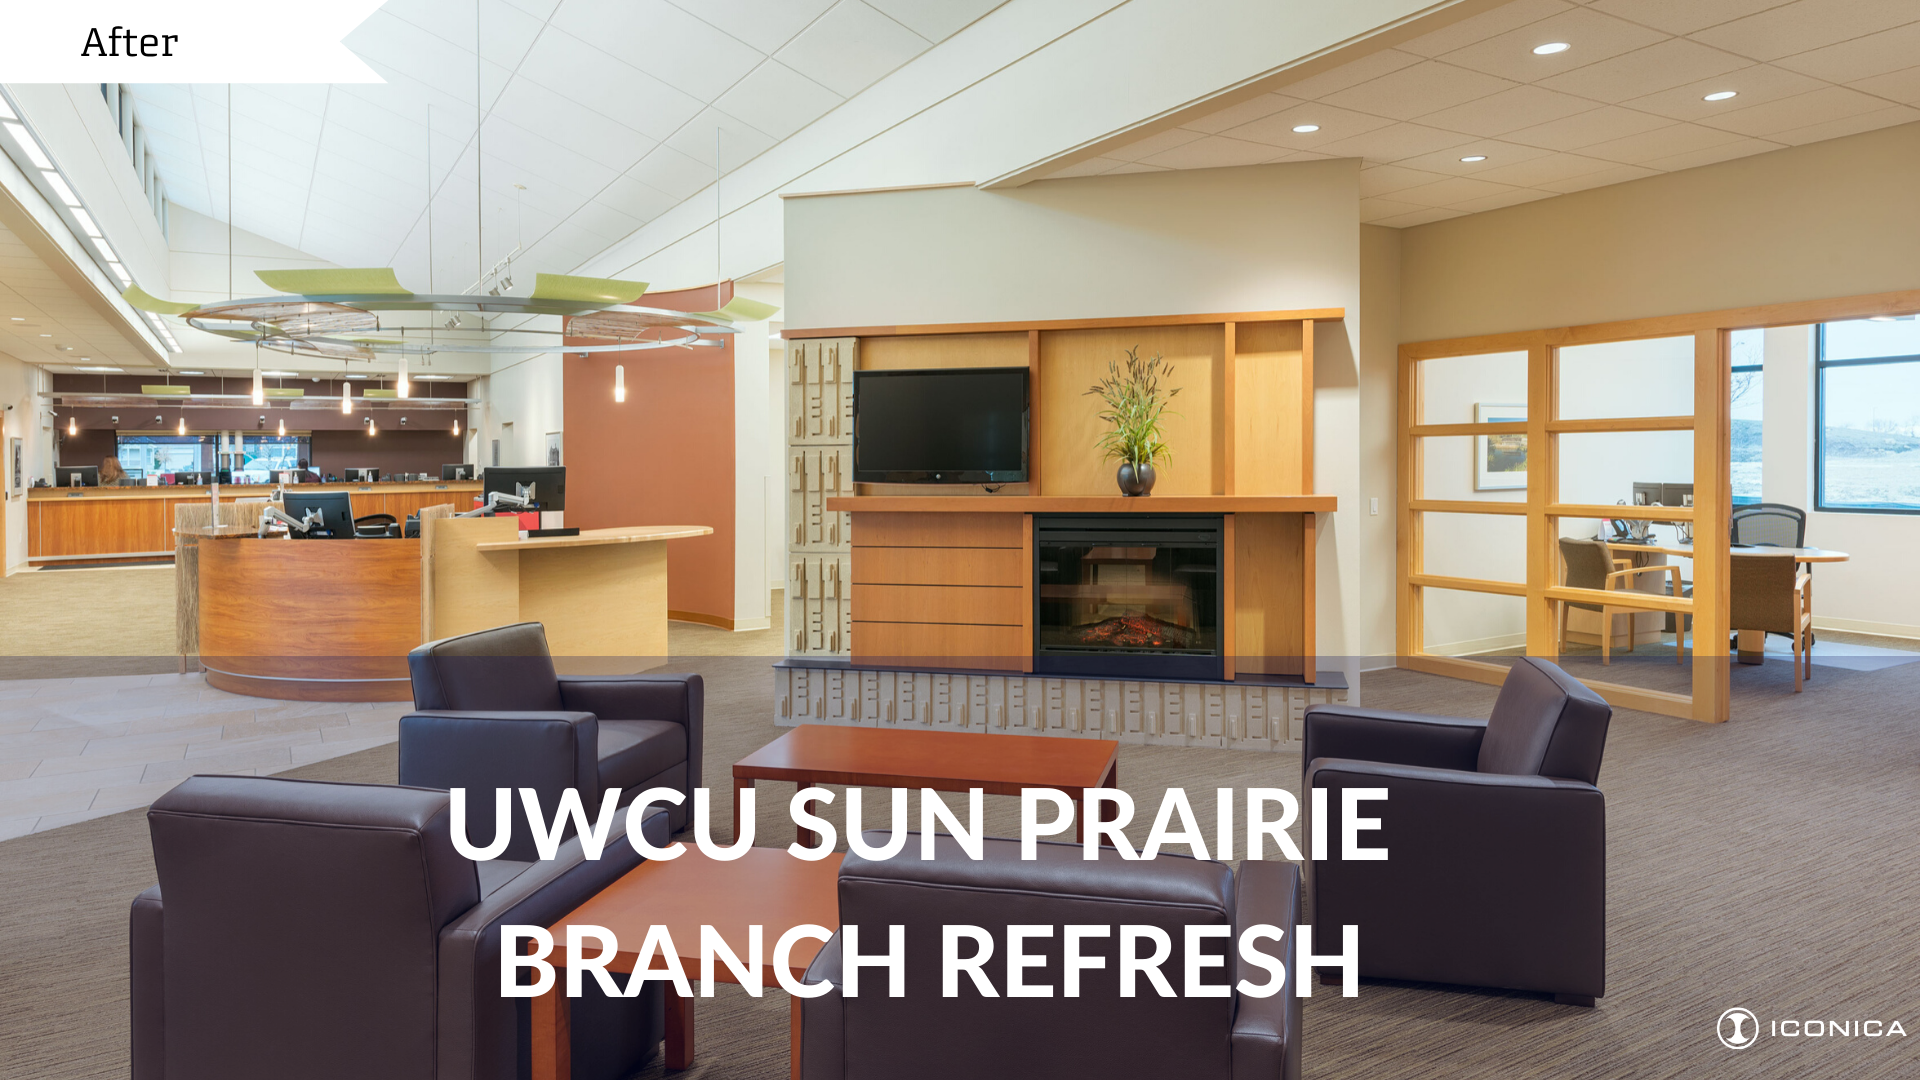 UWCU Sun Prairie Before And After Photos